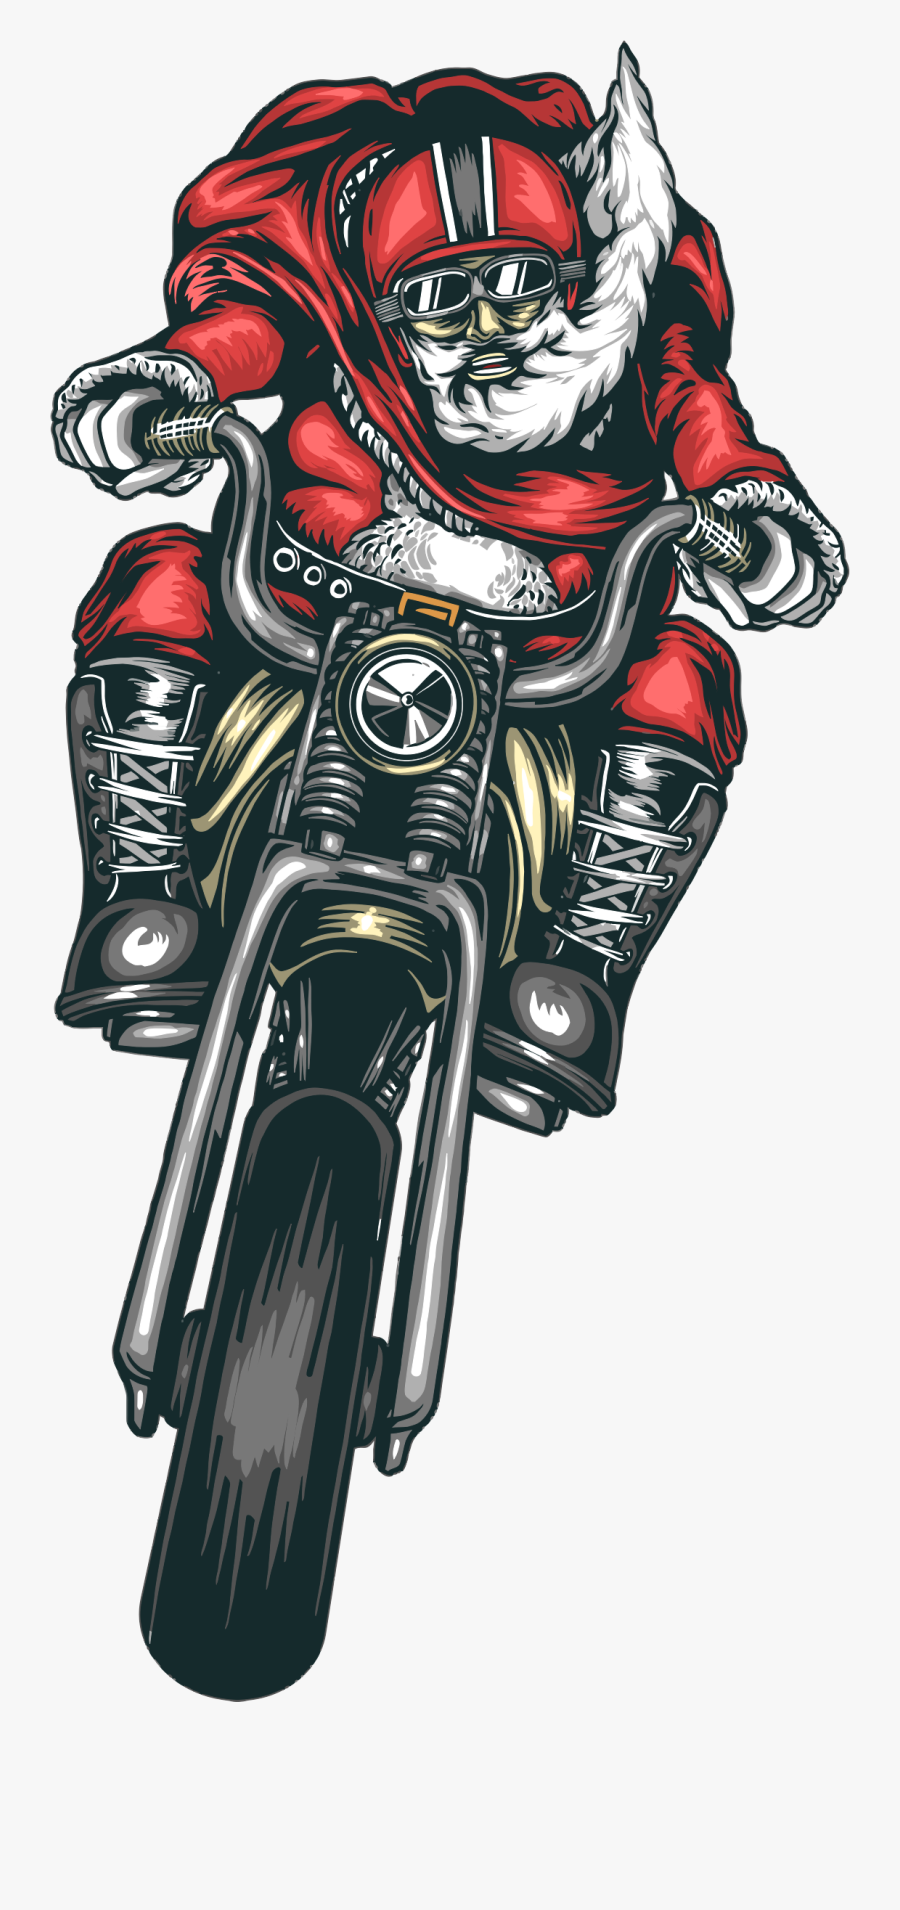 Motorcycle Santa Clip Arts.